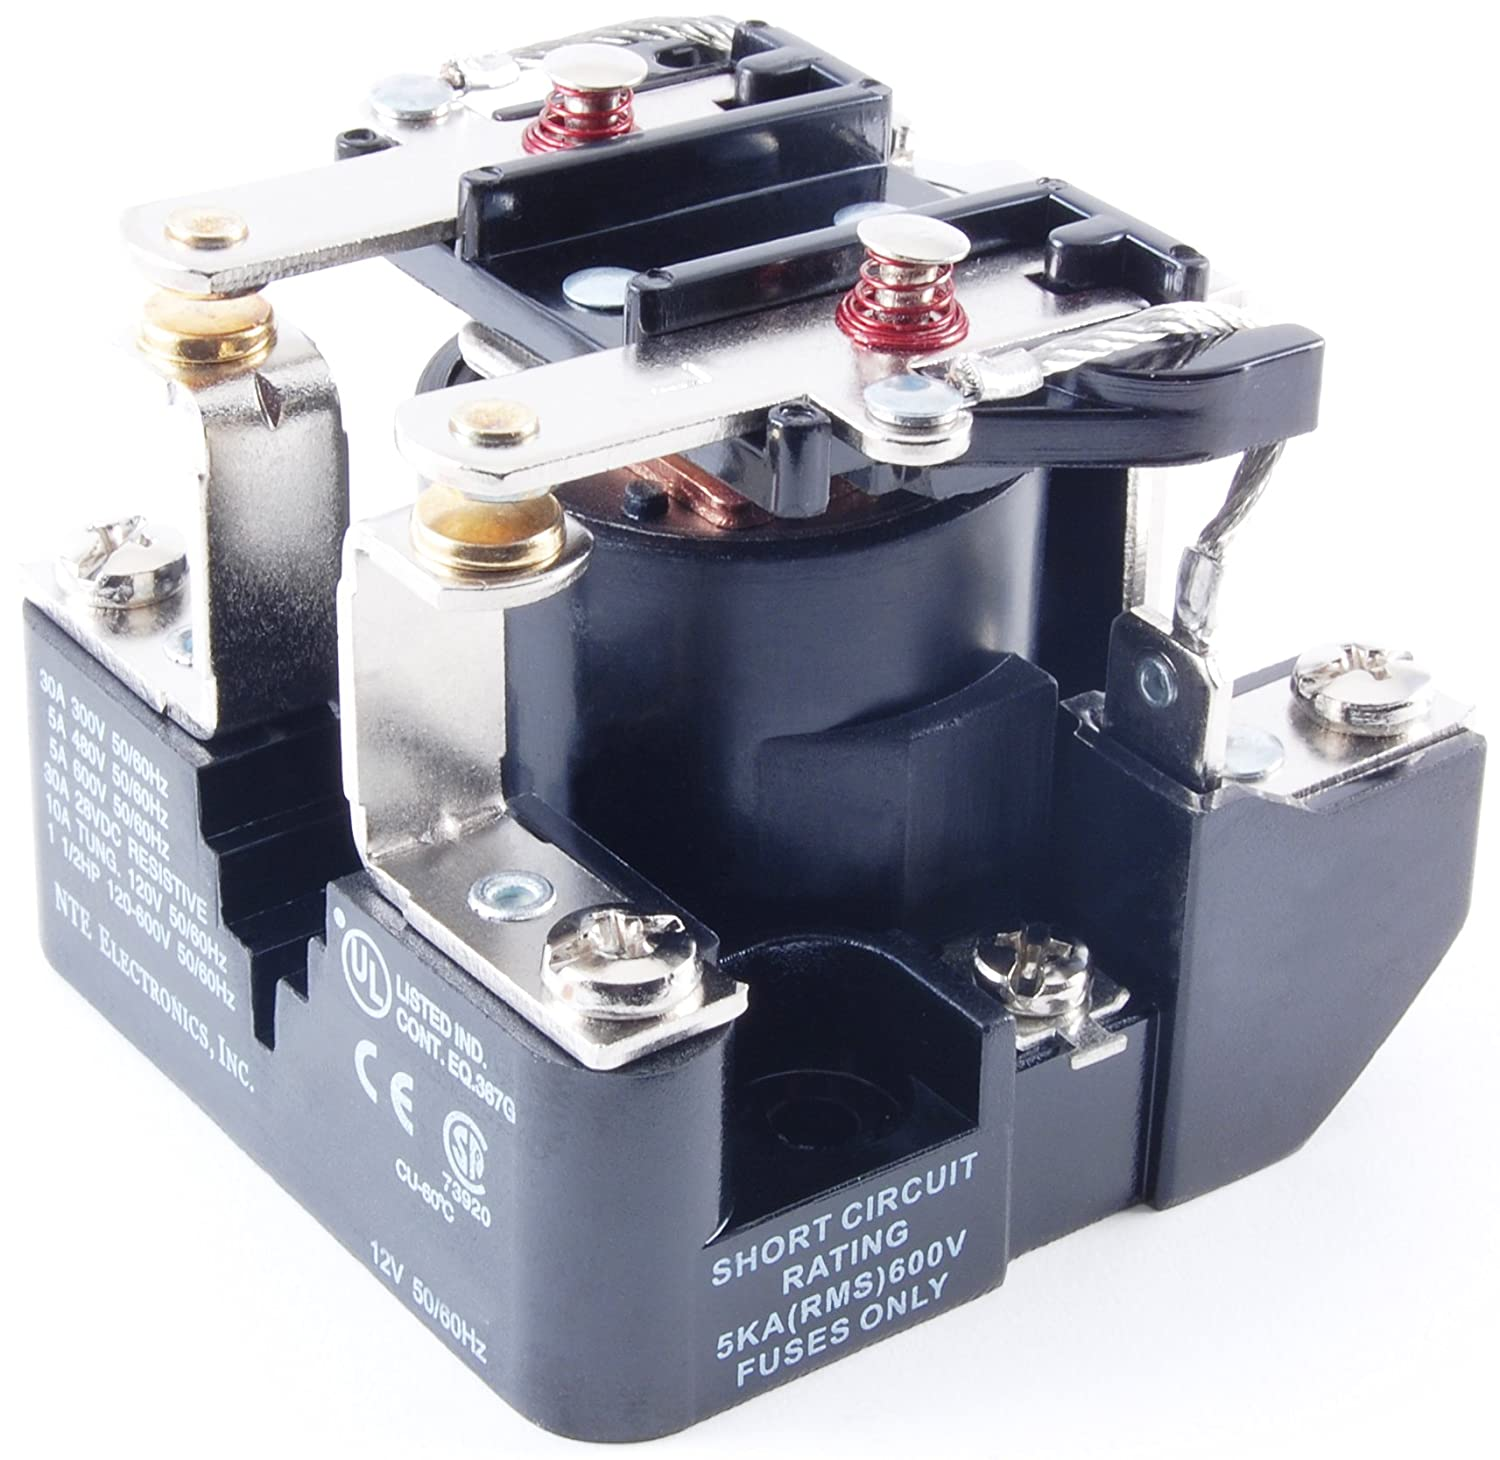 10 Amp 24 VDC Inc. DPDT Contact Arrangement NTE Electronics R06-11D10-24 Series R6 General Purpose Multicontact DC Open Frame Relay